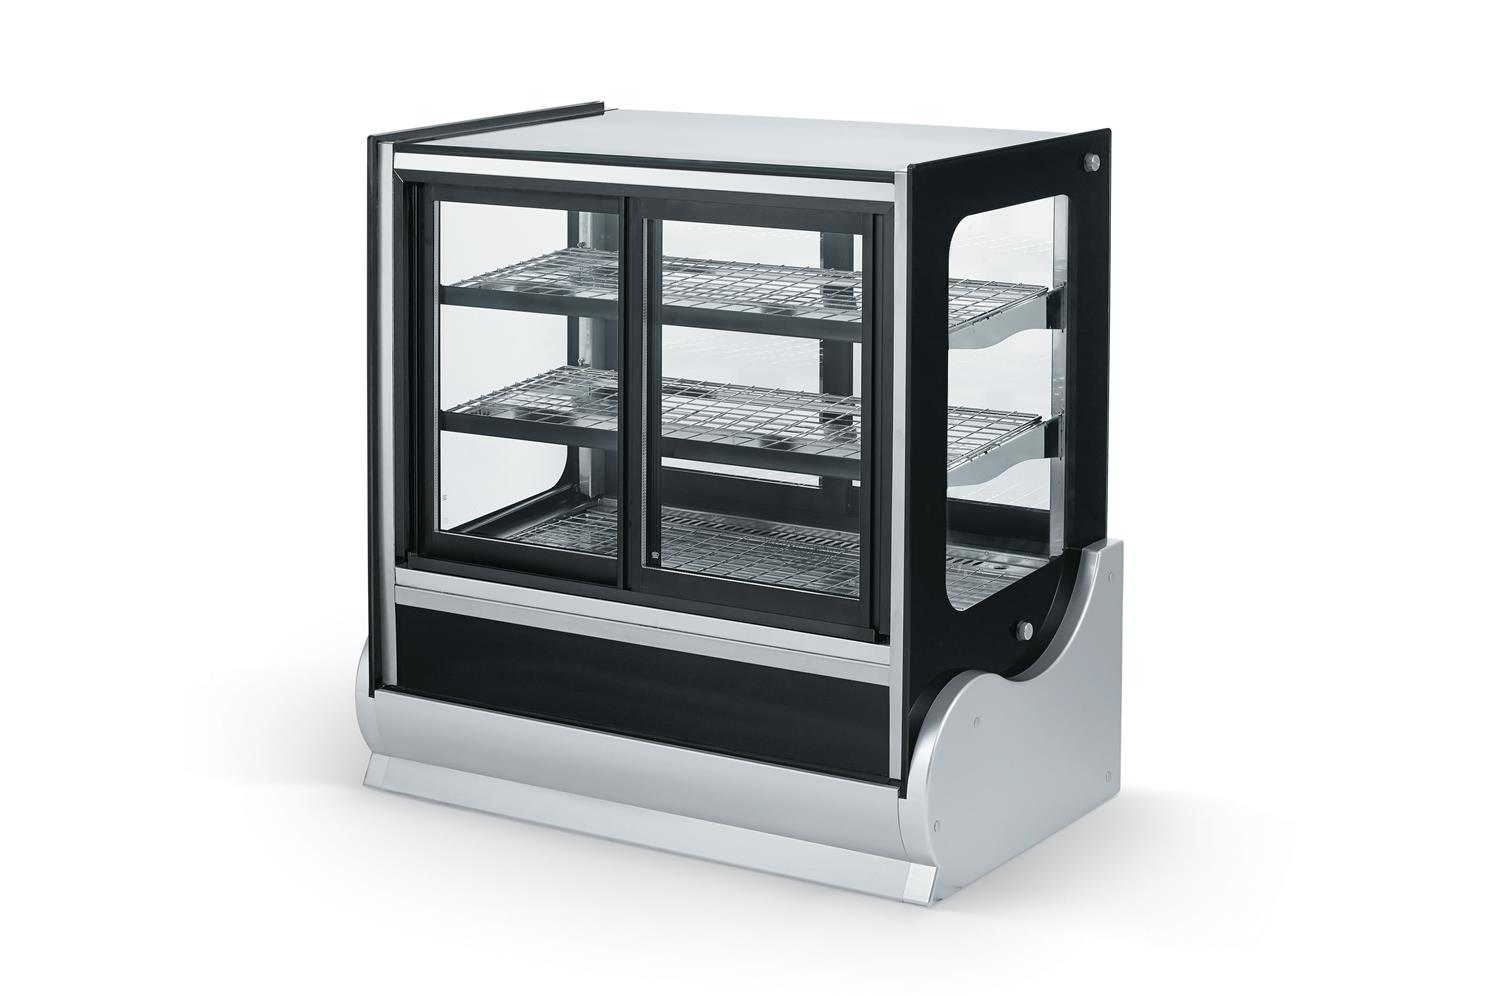 Vollrath 40889 Refrigerated Self-Serve Display Case